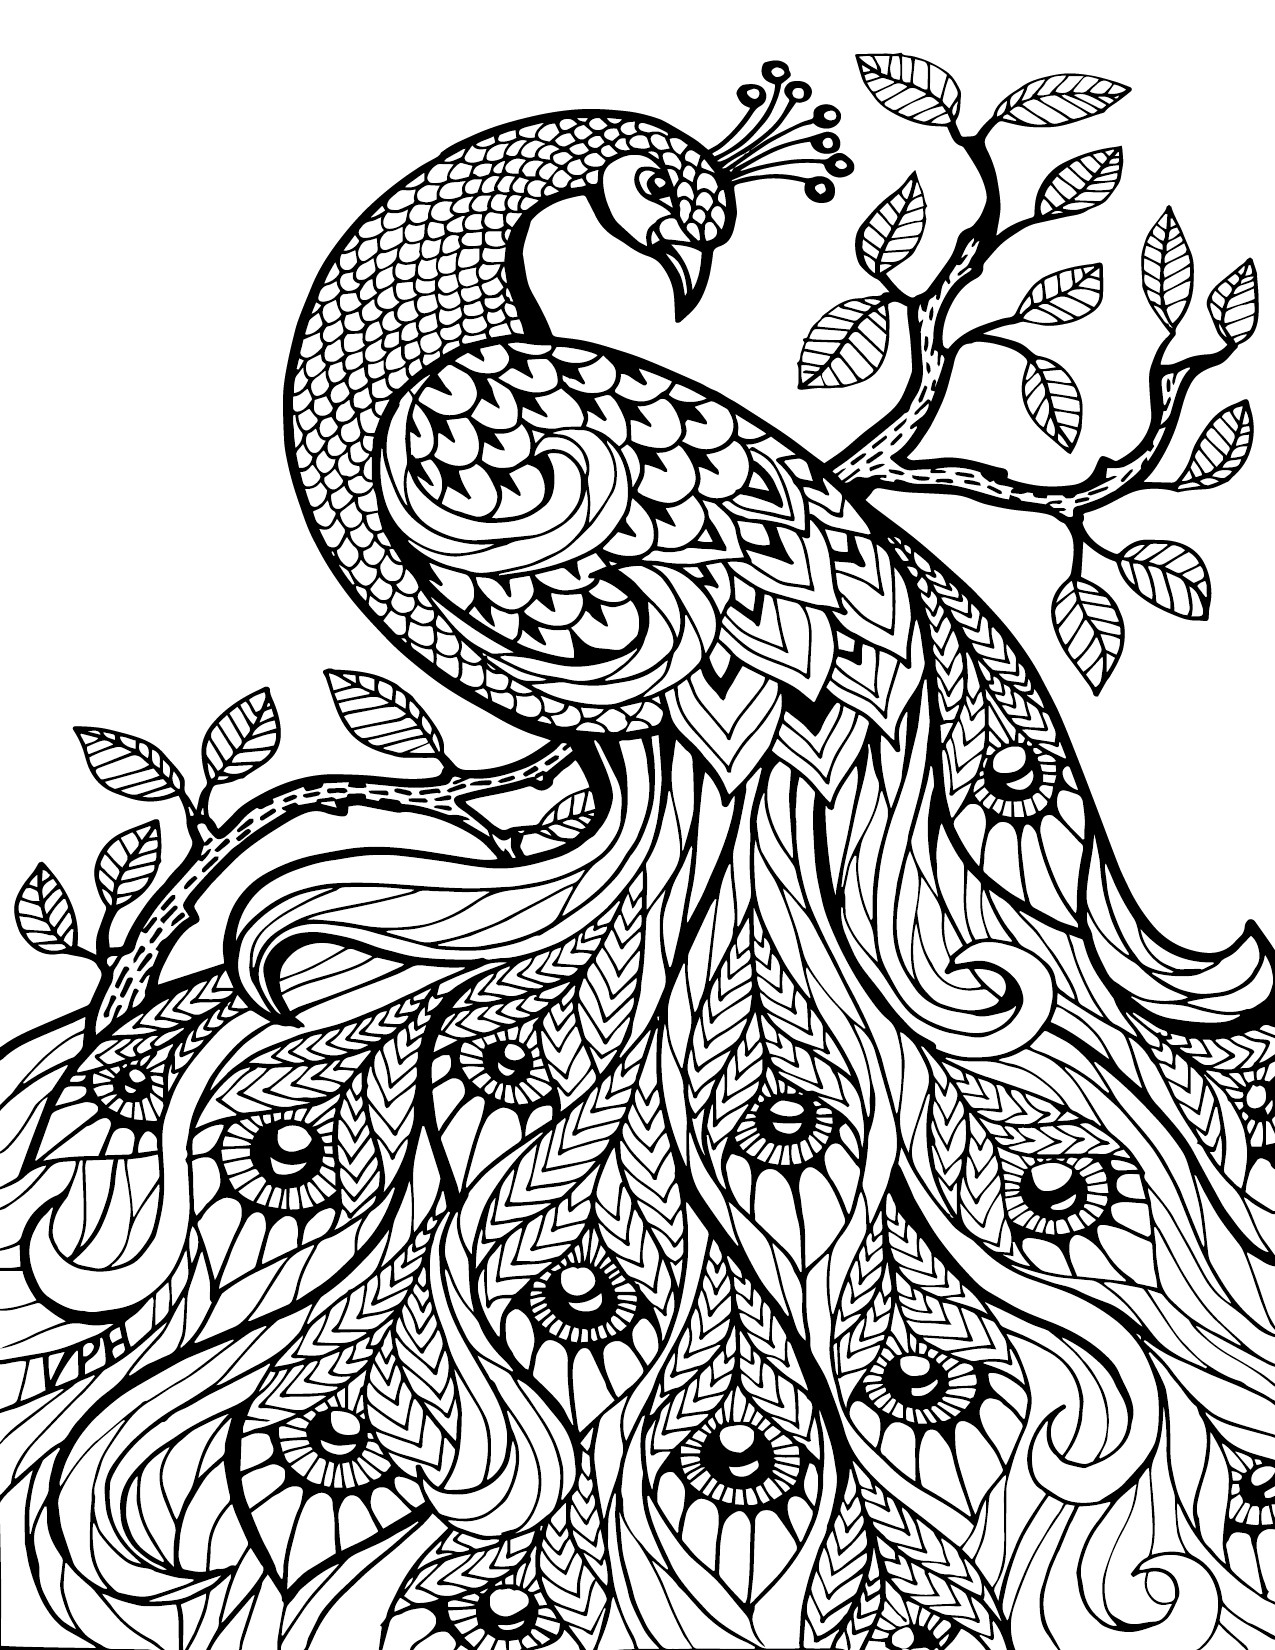 1275x1650 Fresh Geometry Coloring Pages Coloringsuite Free Coloring Pages